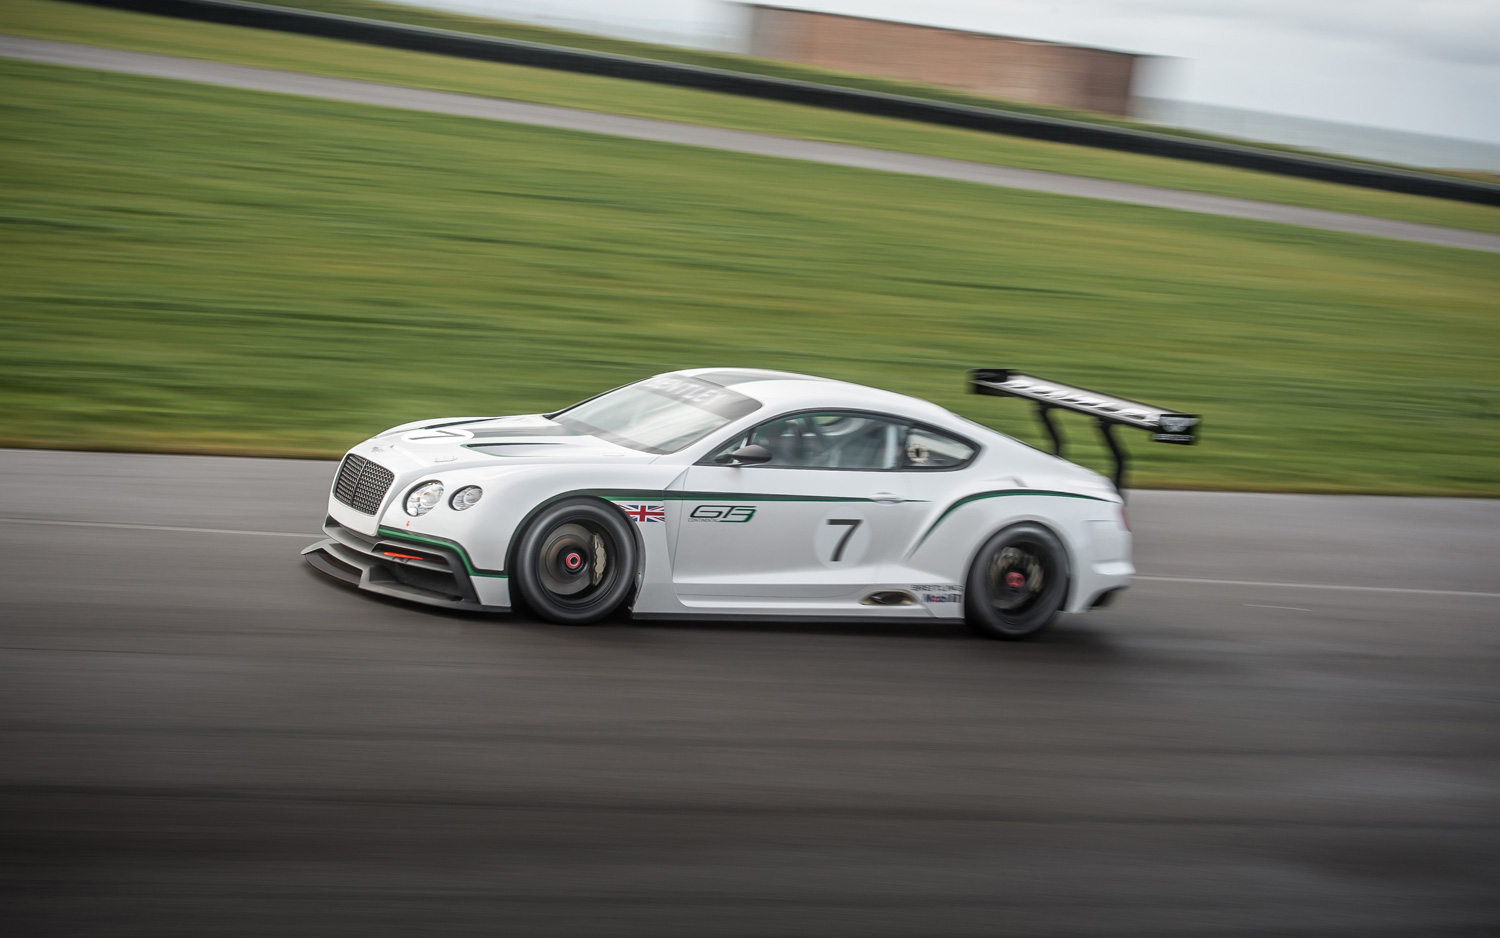 bentley continental gt3 race car new cars reviews. Black Bedroom Furniture Sets. Home Design Ideas